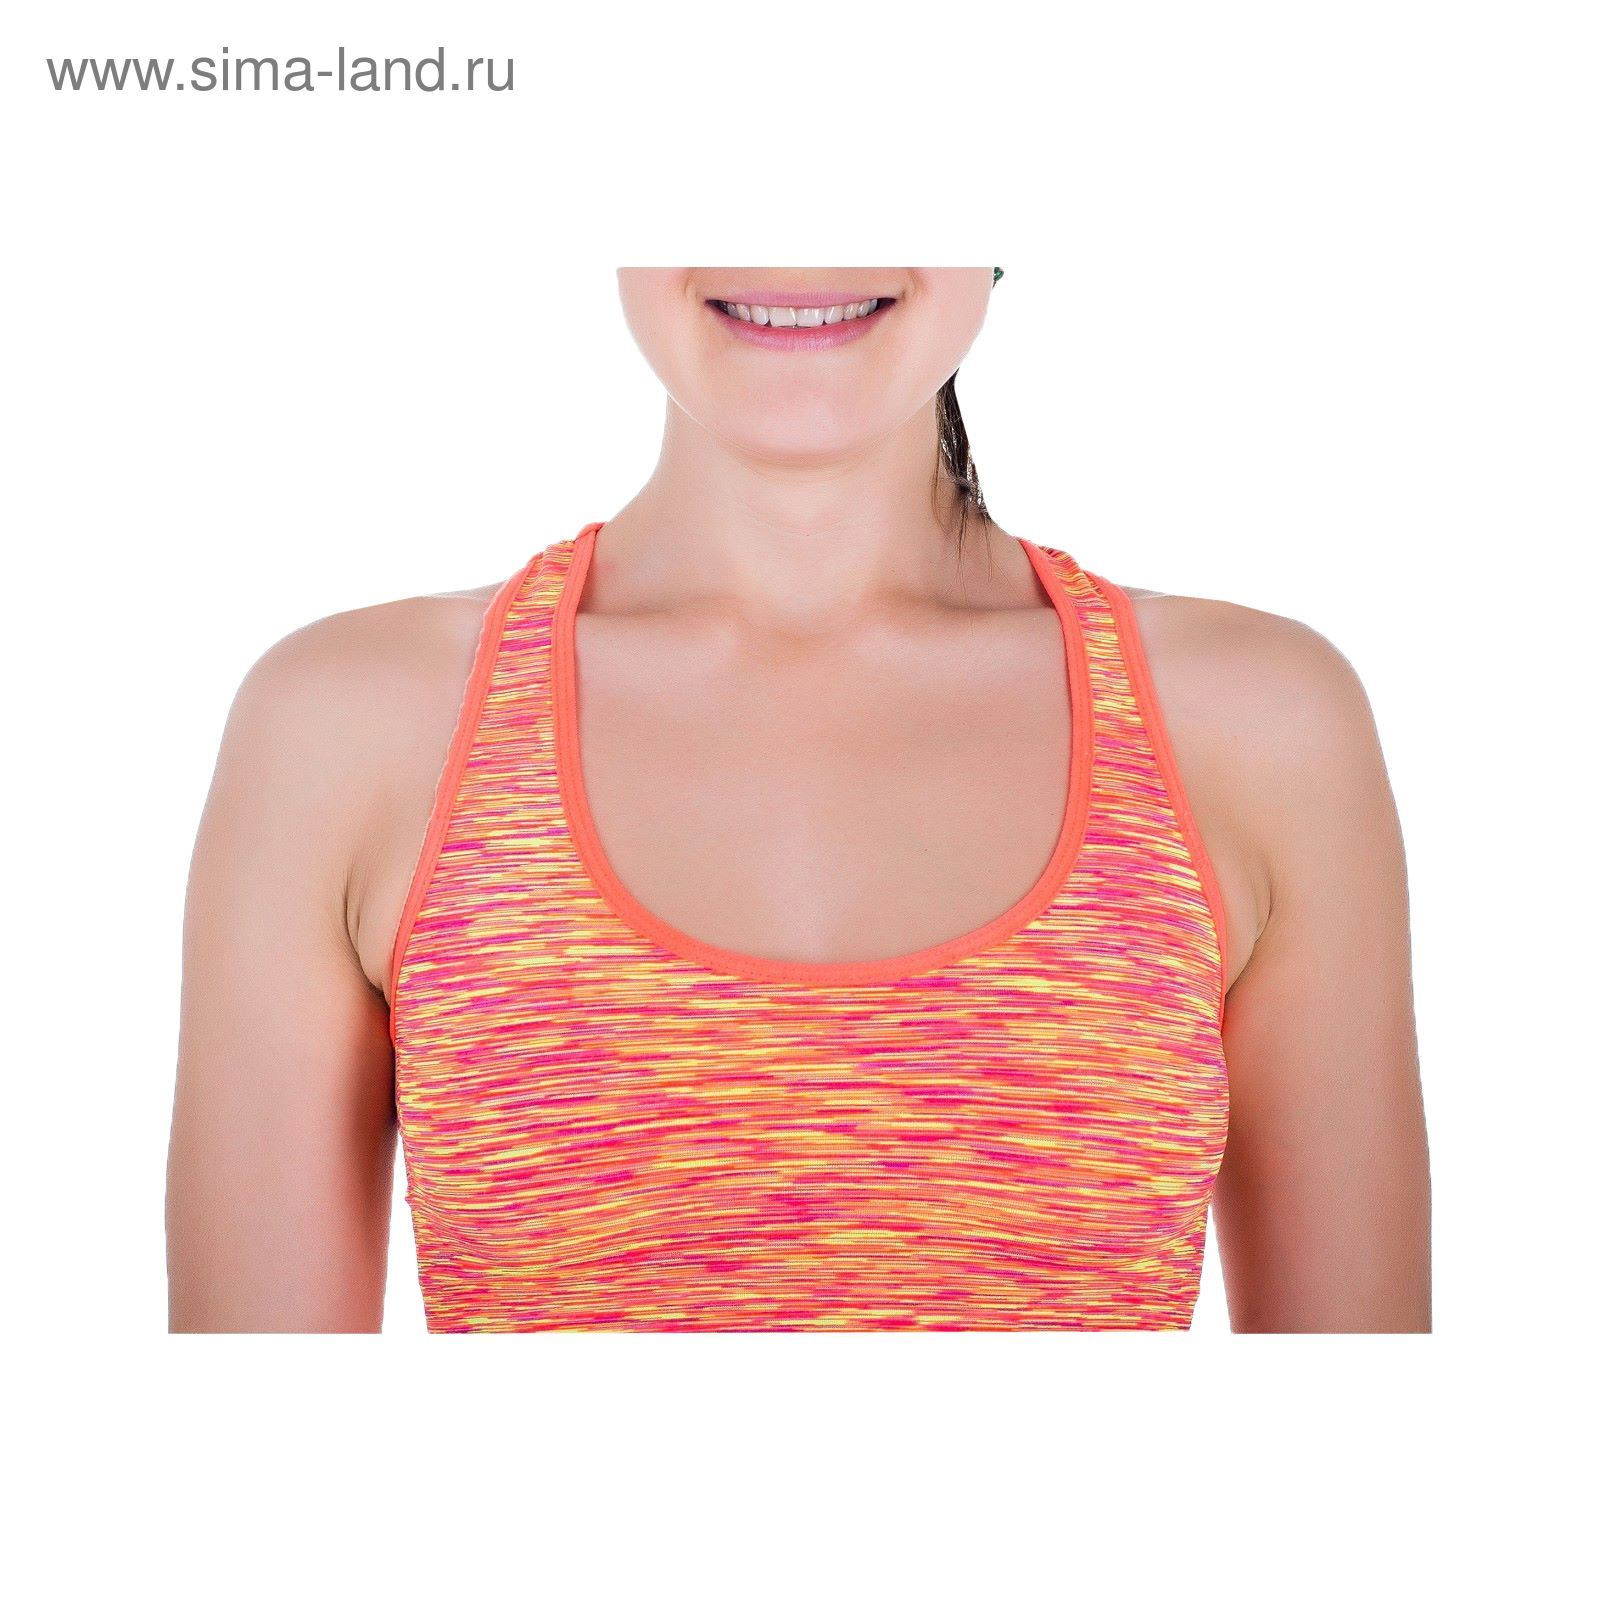 Спортивная майка ONLITOP Fitness time coral, размер S-M (42-44)